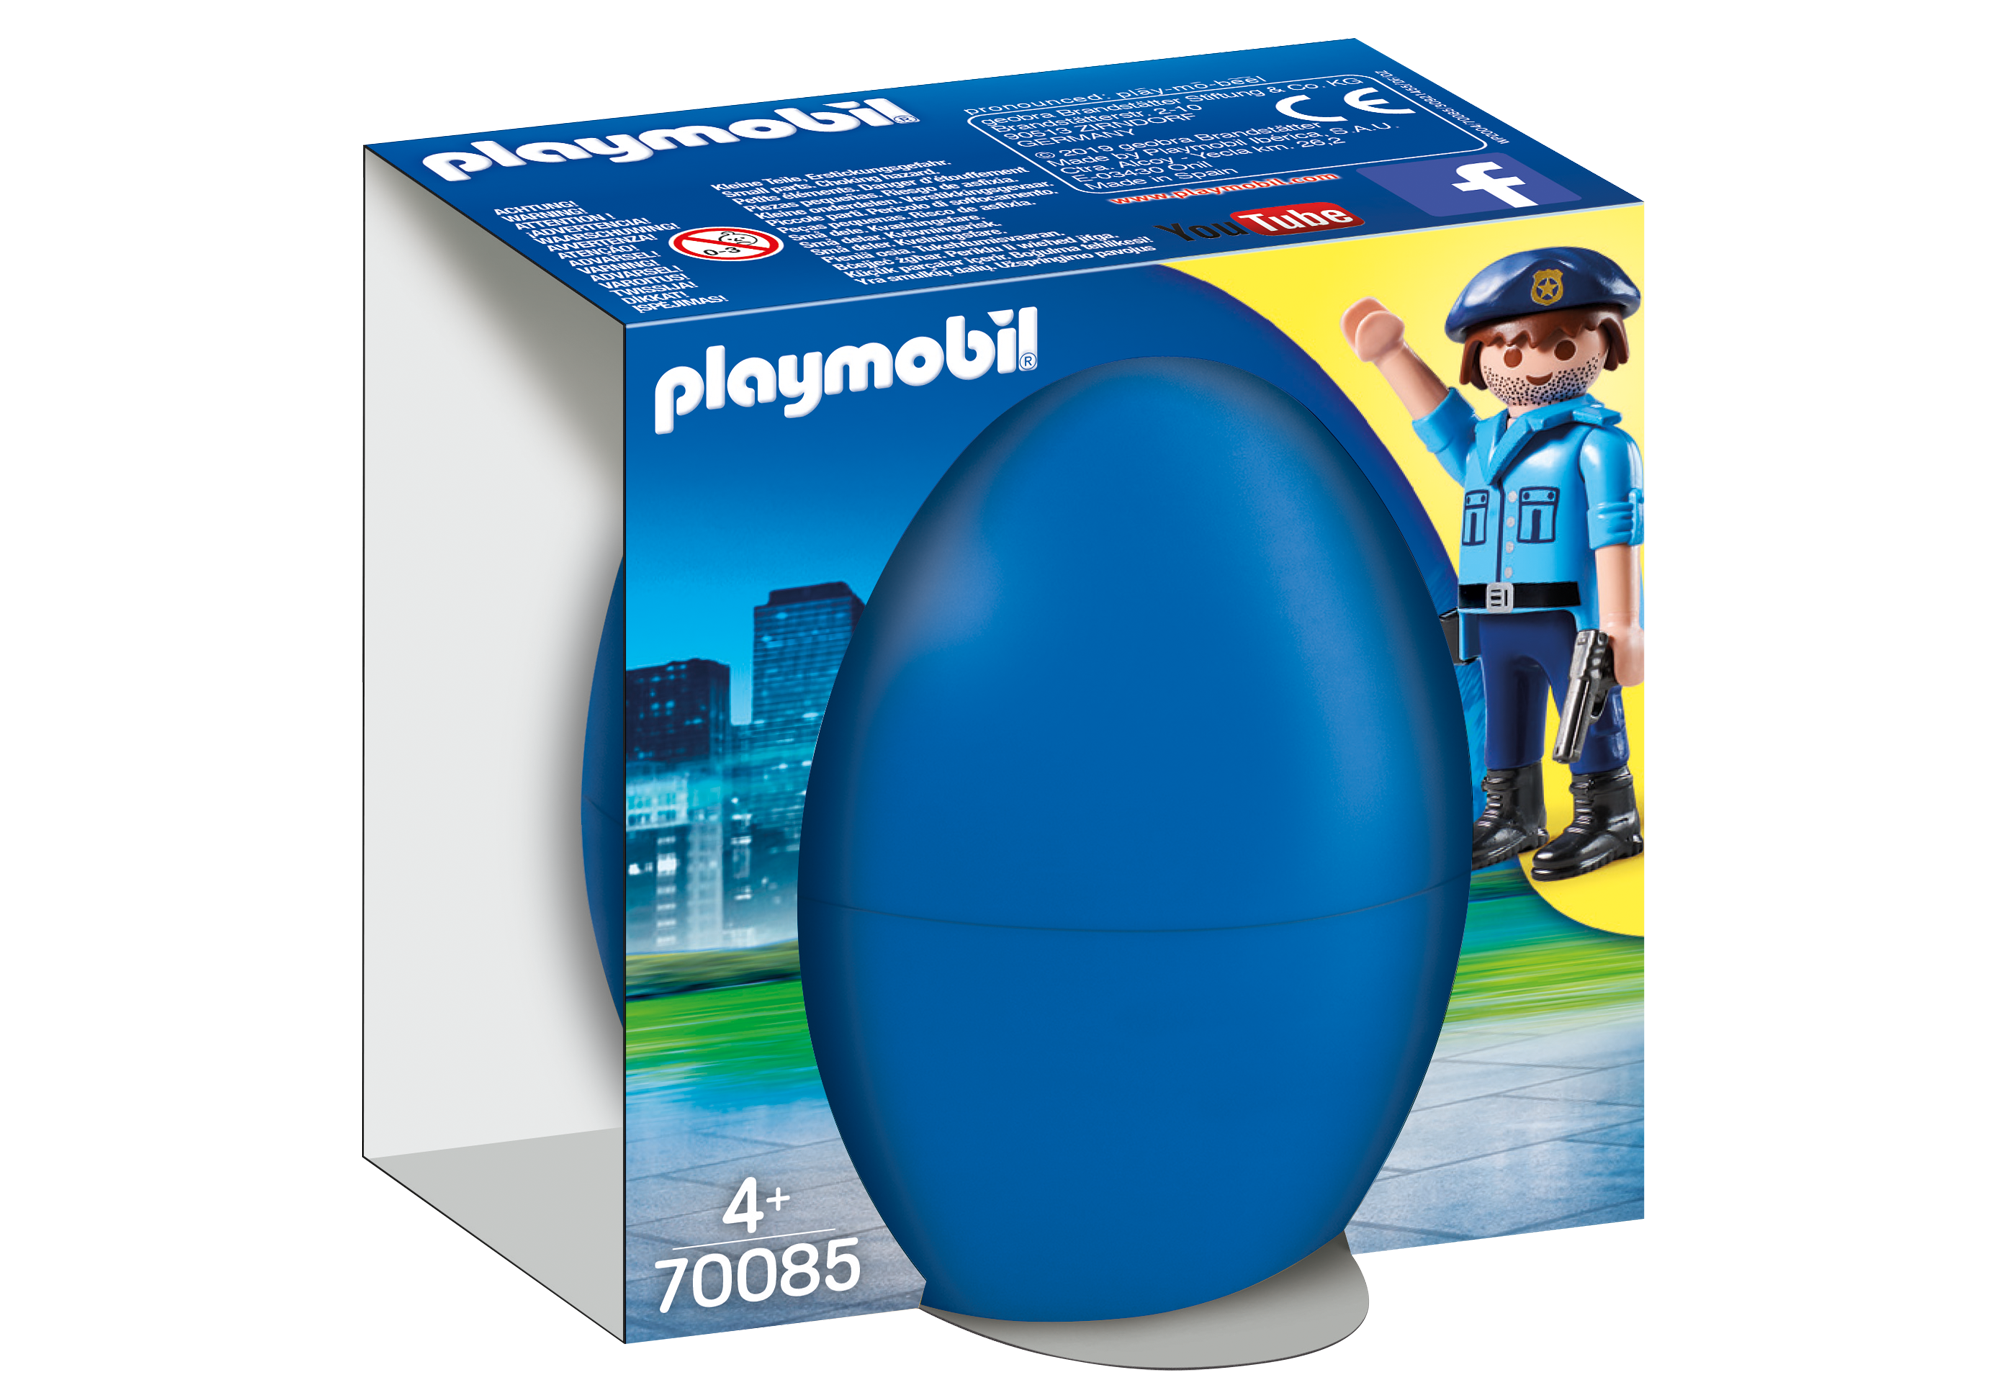 http://media.playmobil.com/i/playmobil/70085_product_box_front